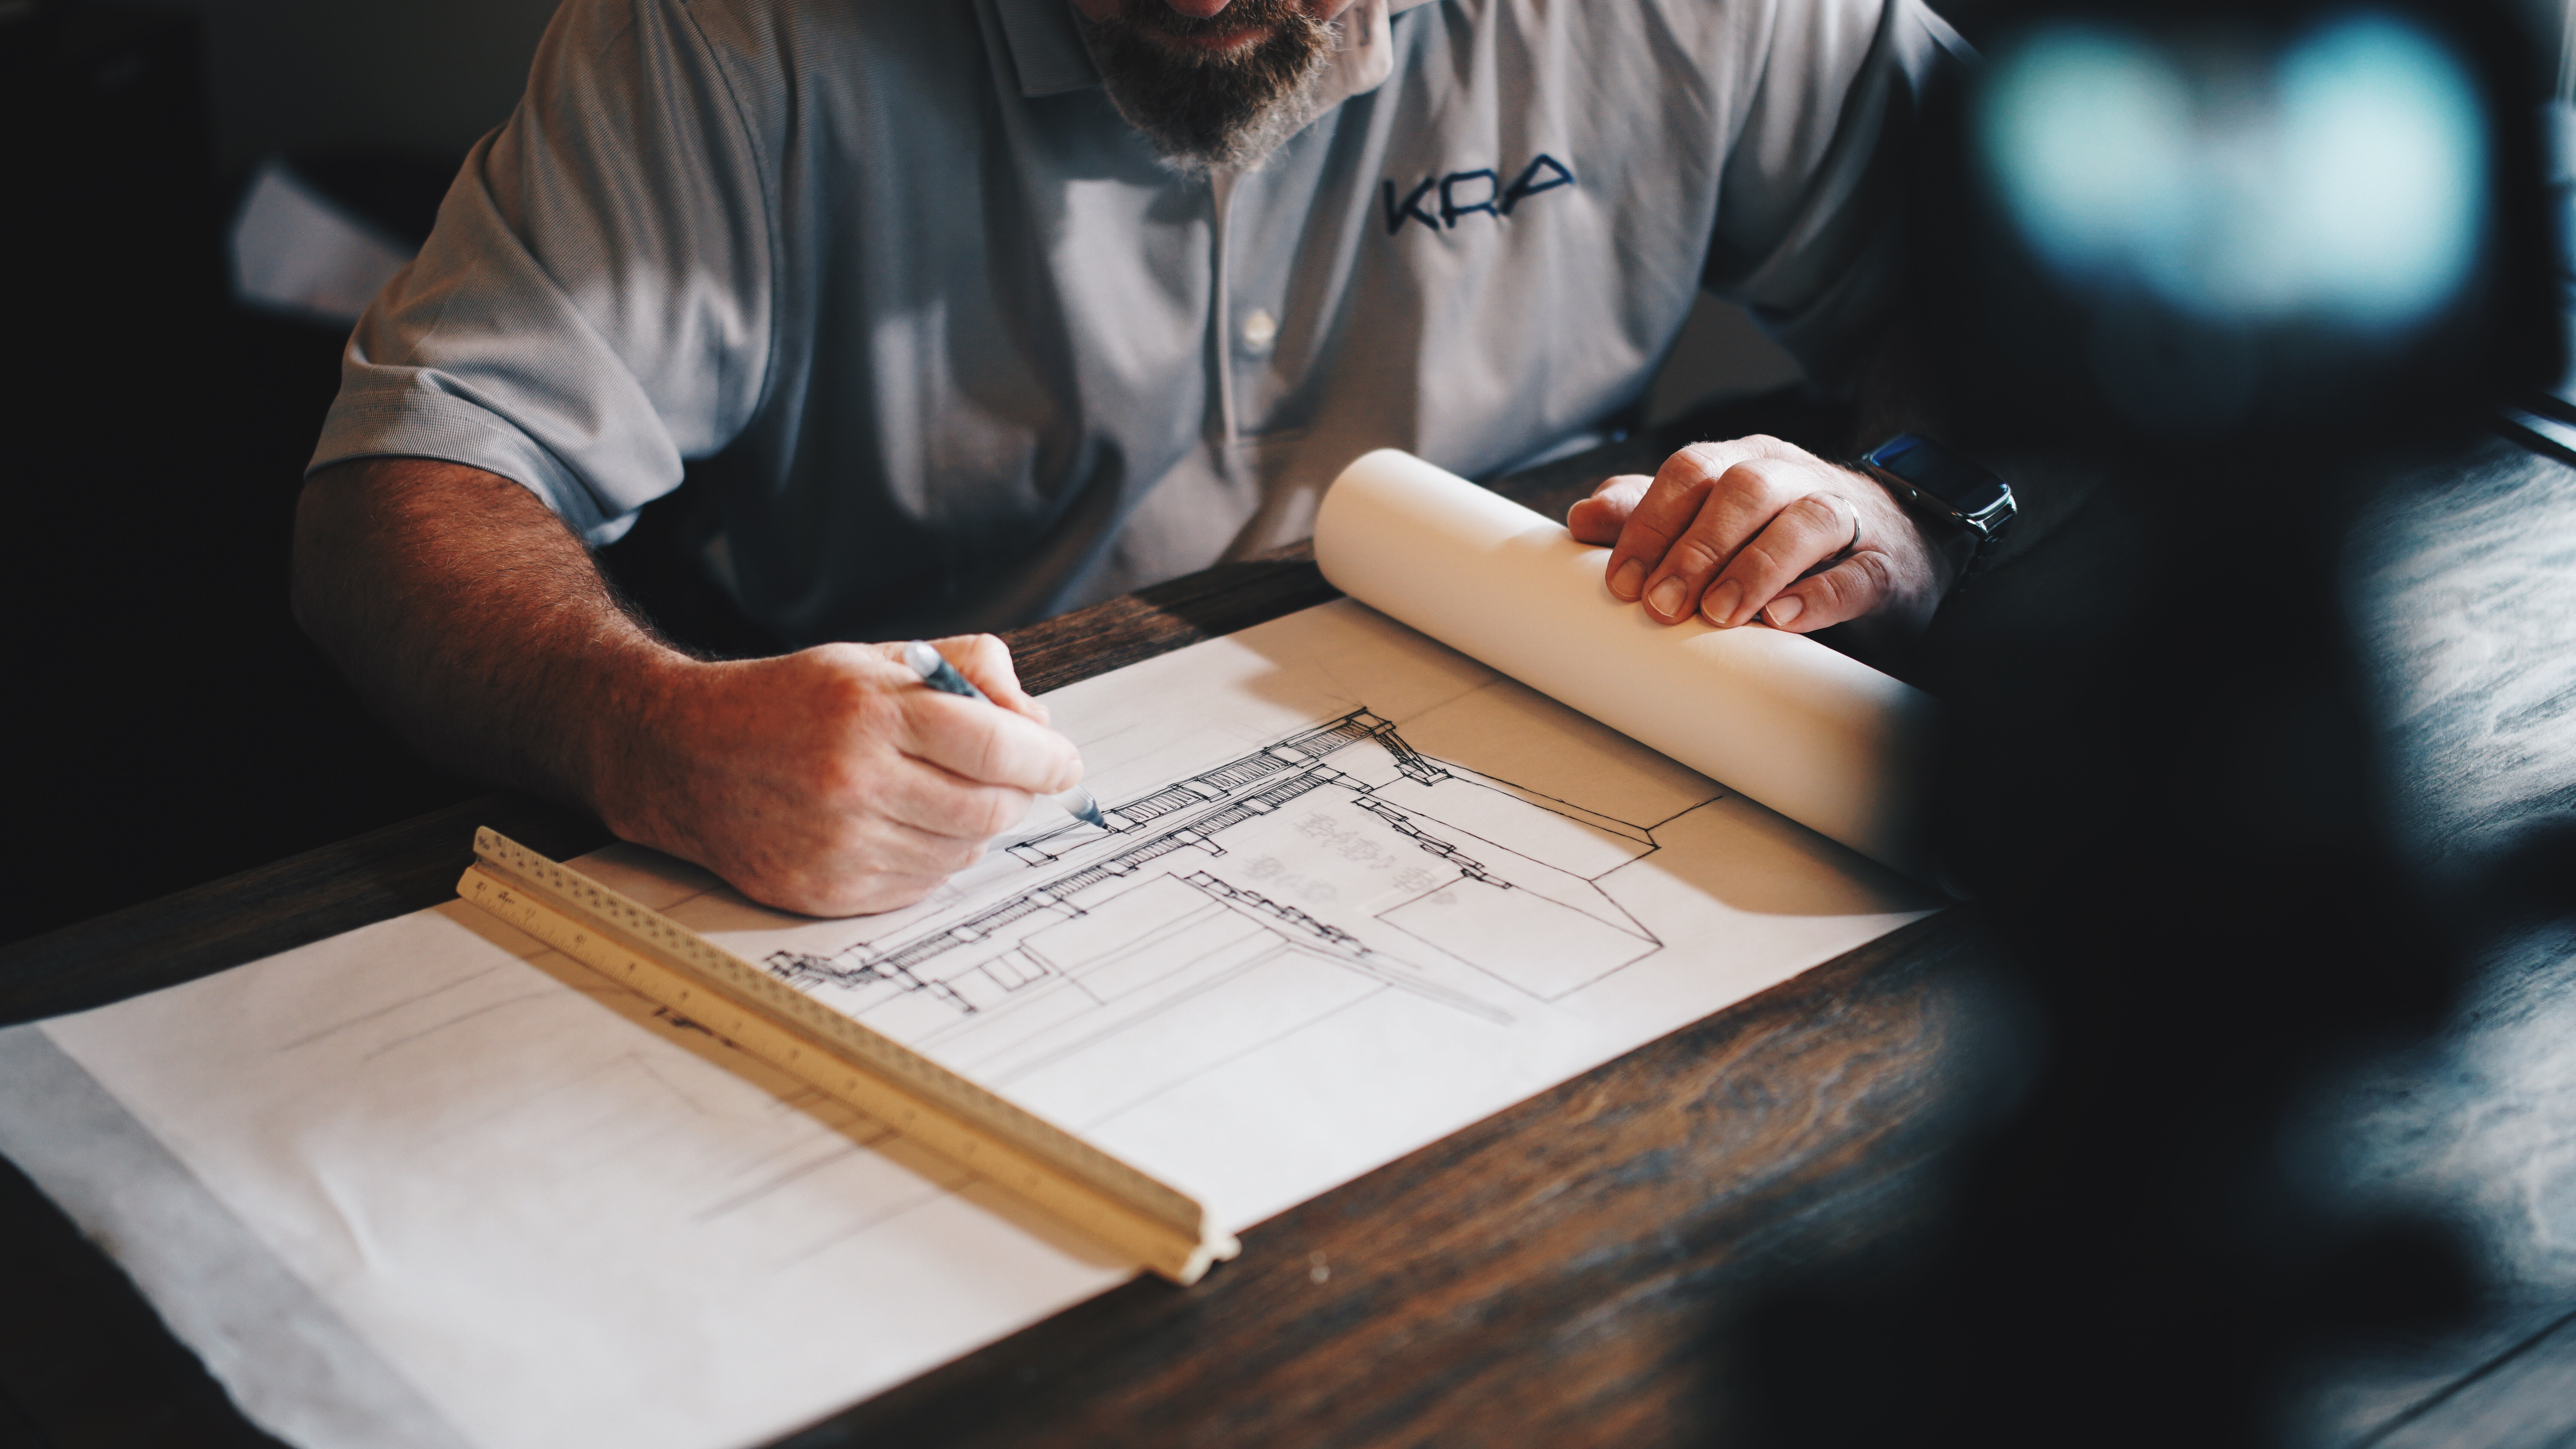 Architect designing a loft conversion by hand